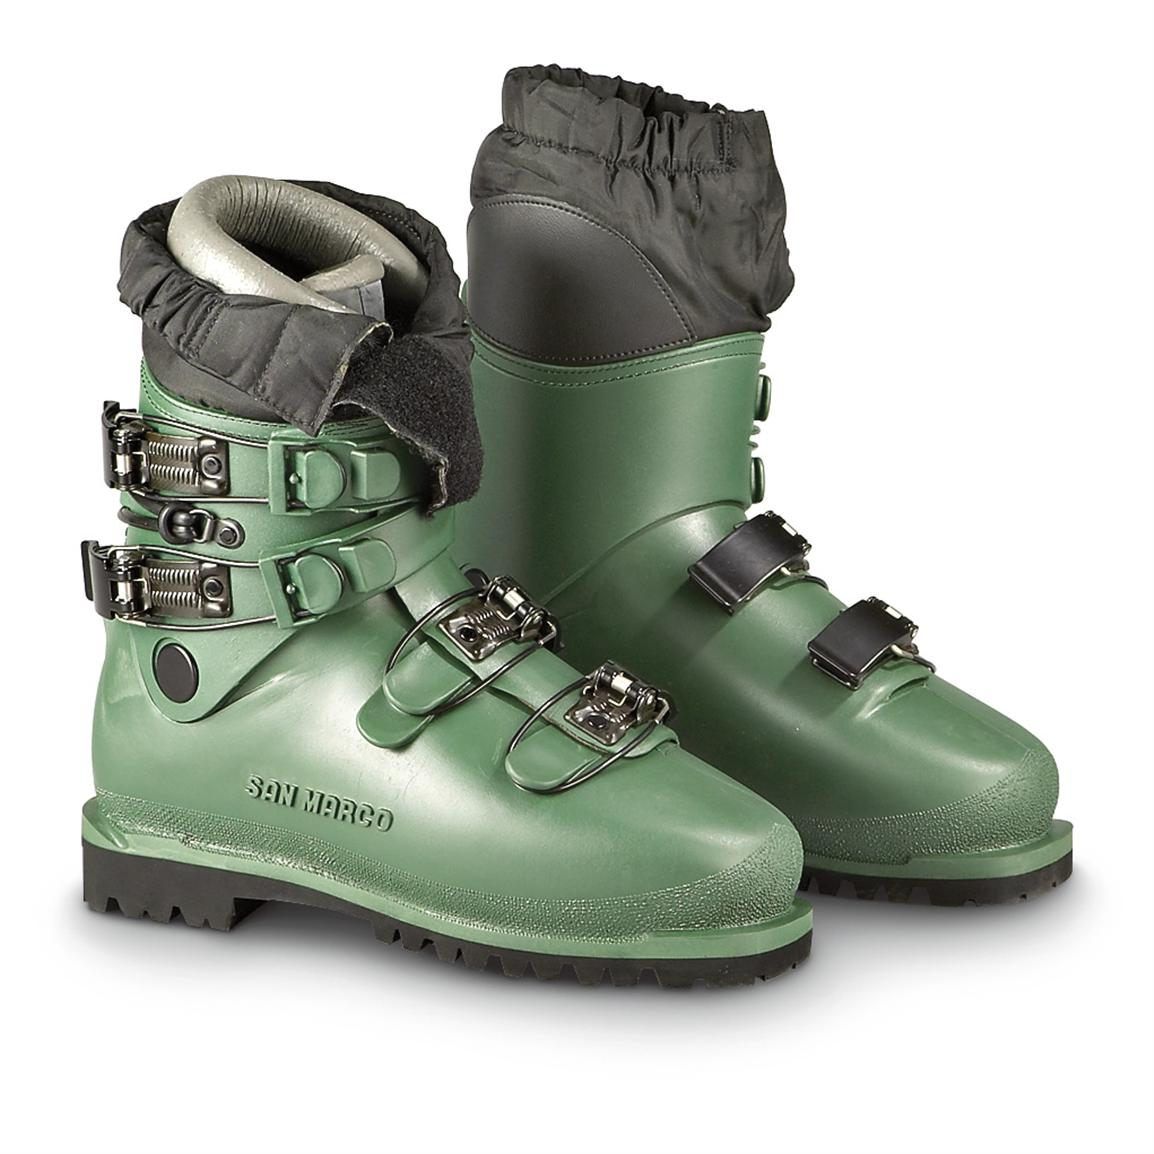 New Men's Italian Military Mountaineering Boots, Olive Drab